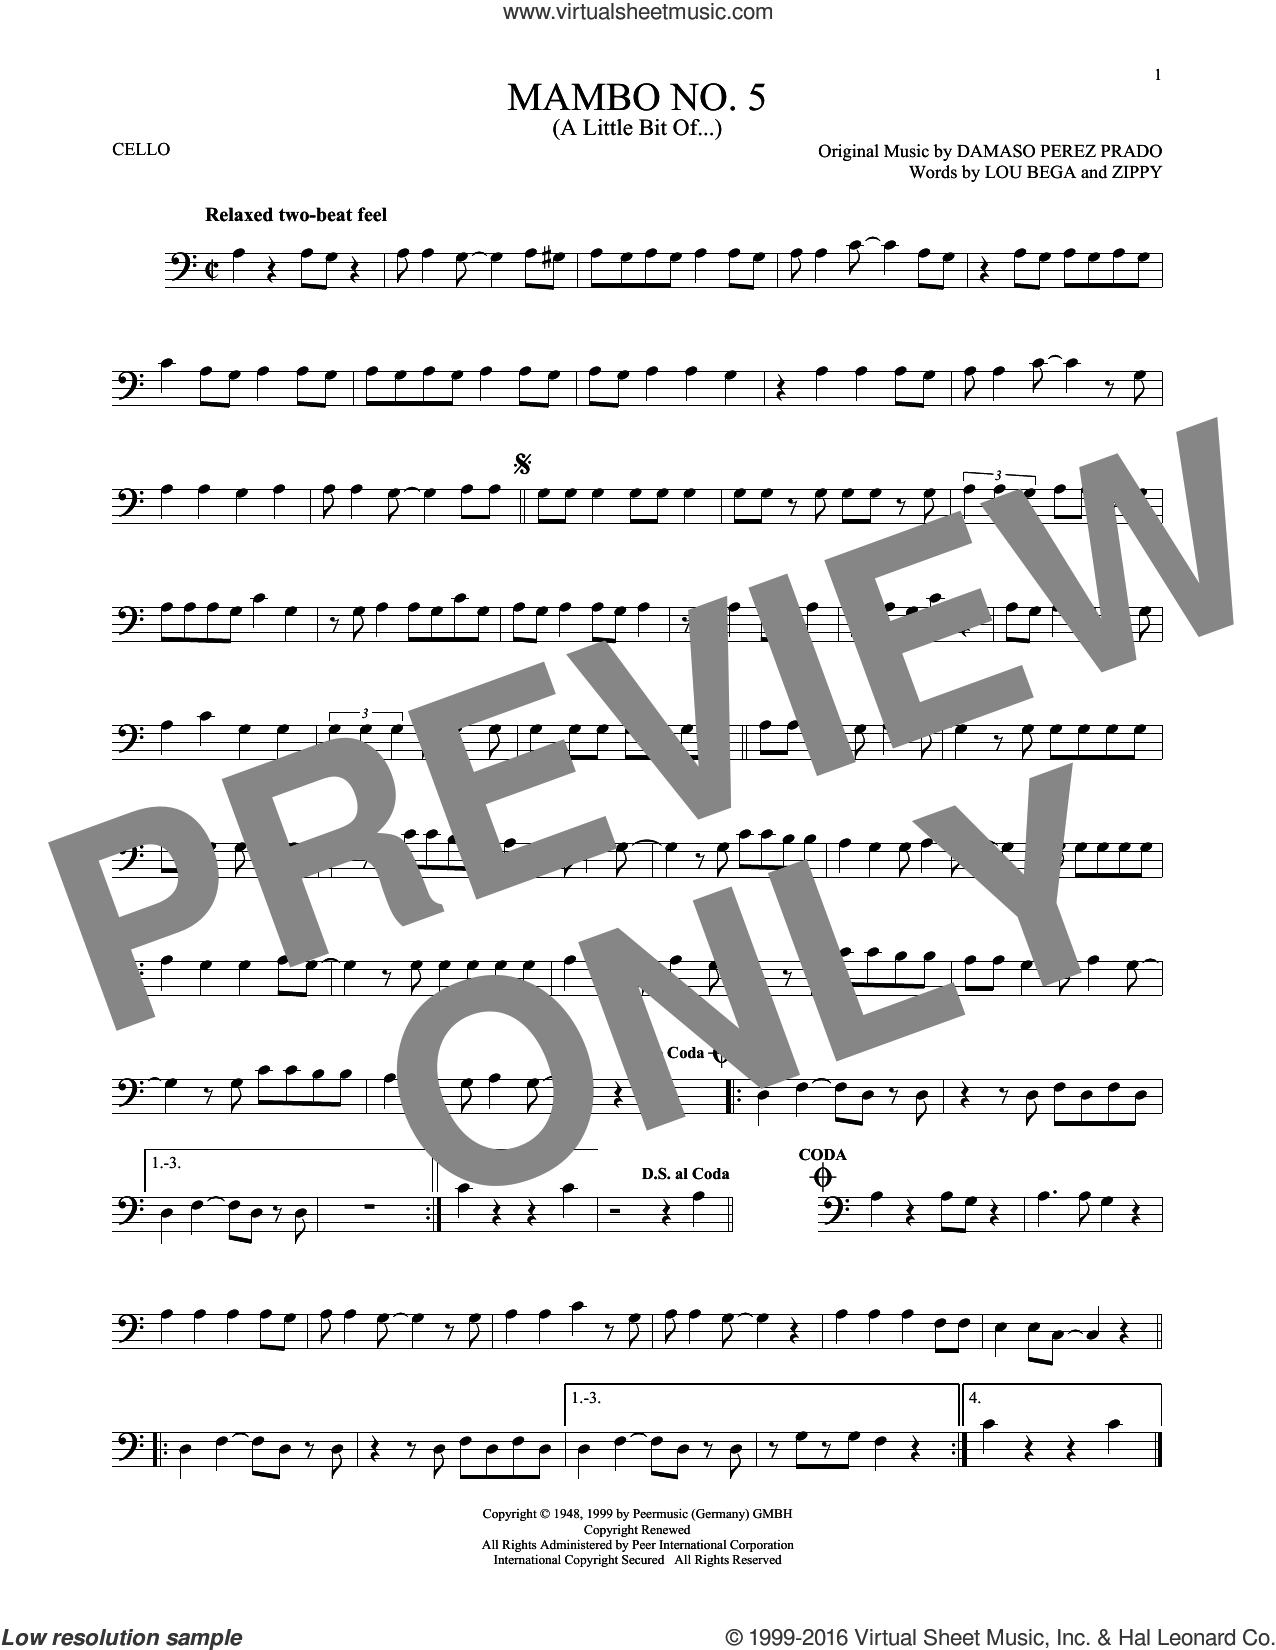 Mambo No. 5 (A Little Bit Of...) sheet music for cello solo by Lou Bega and Damaso Perez Prado, intermediate. Score Image Preview.